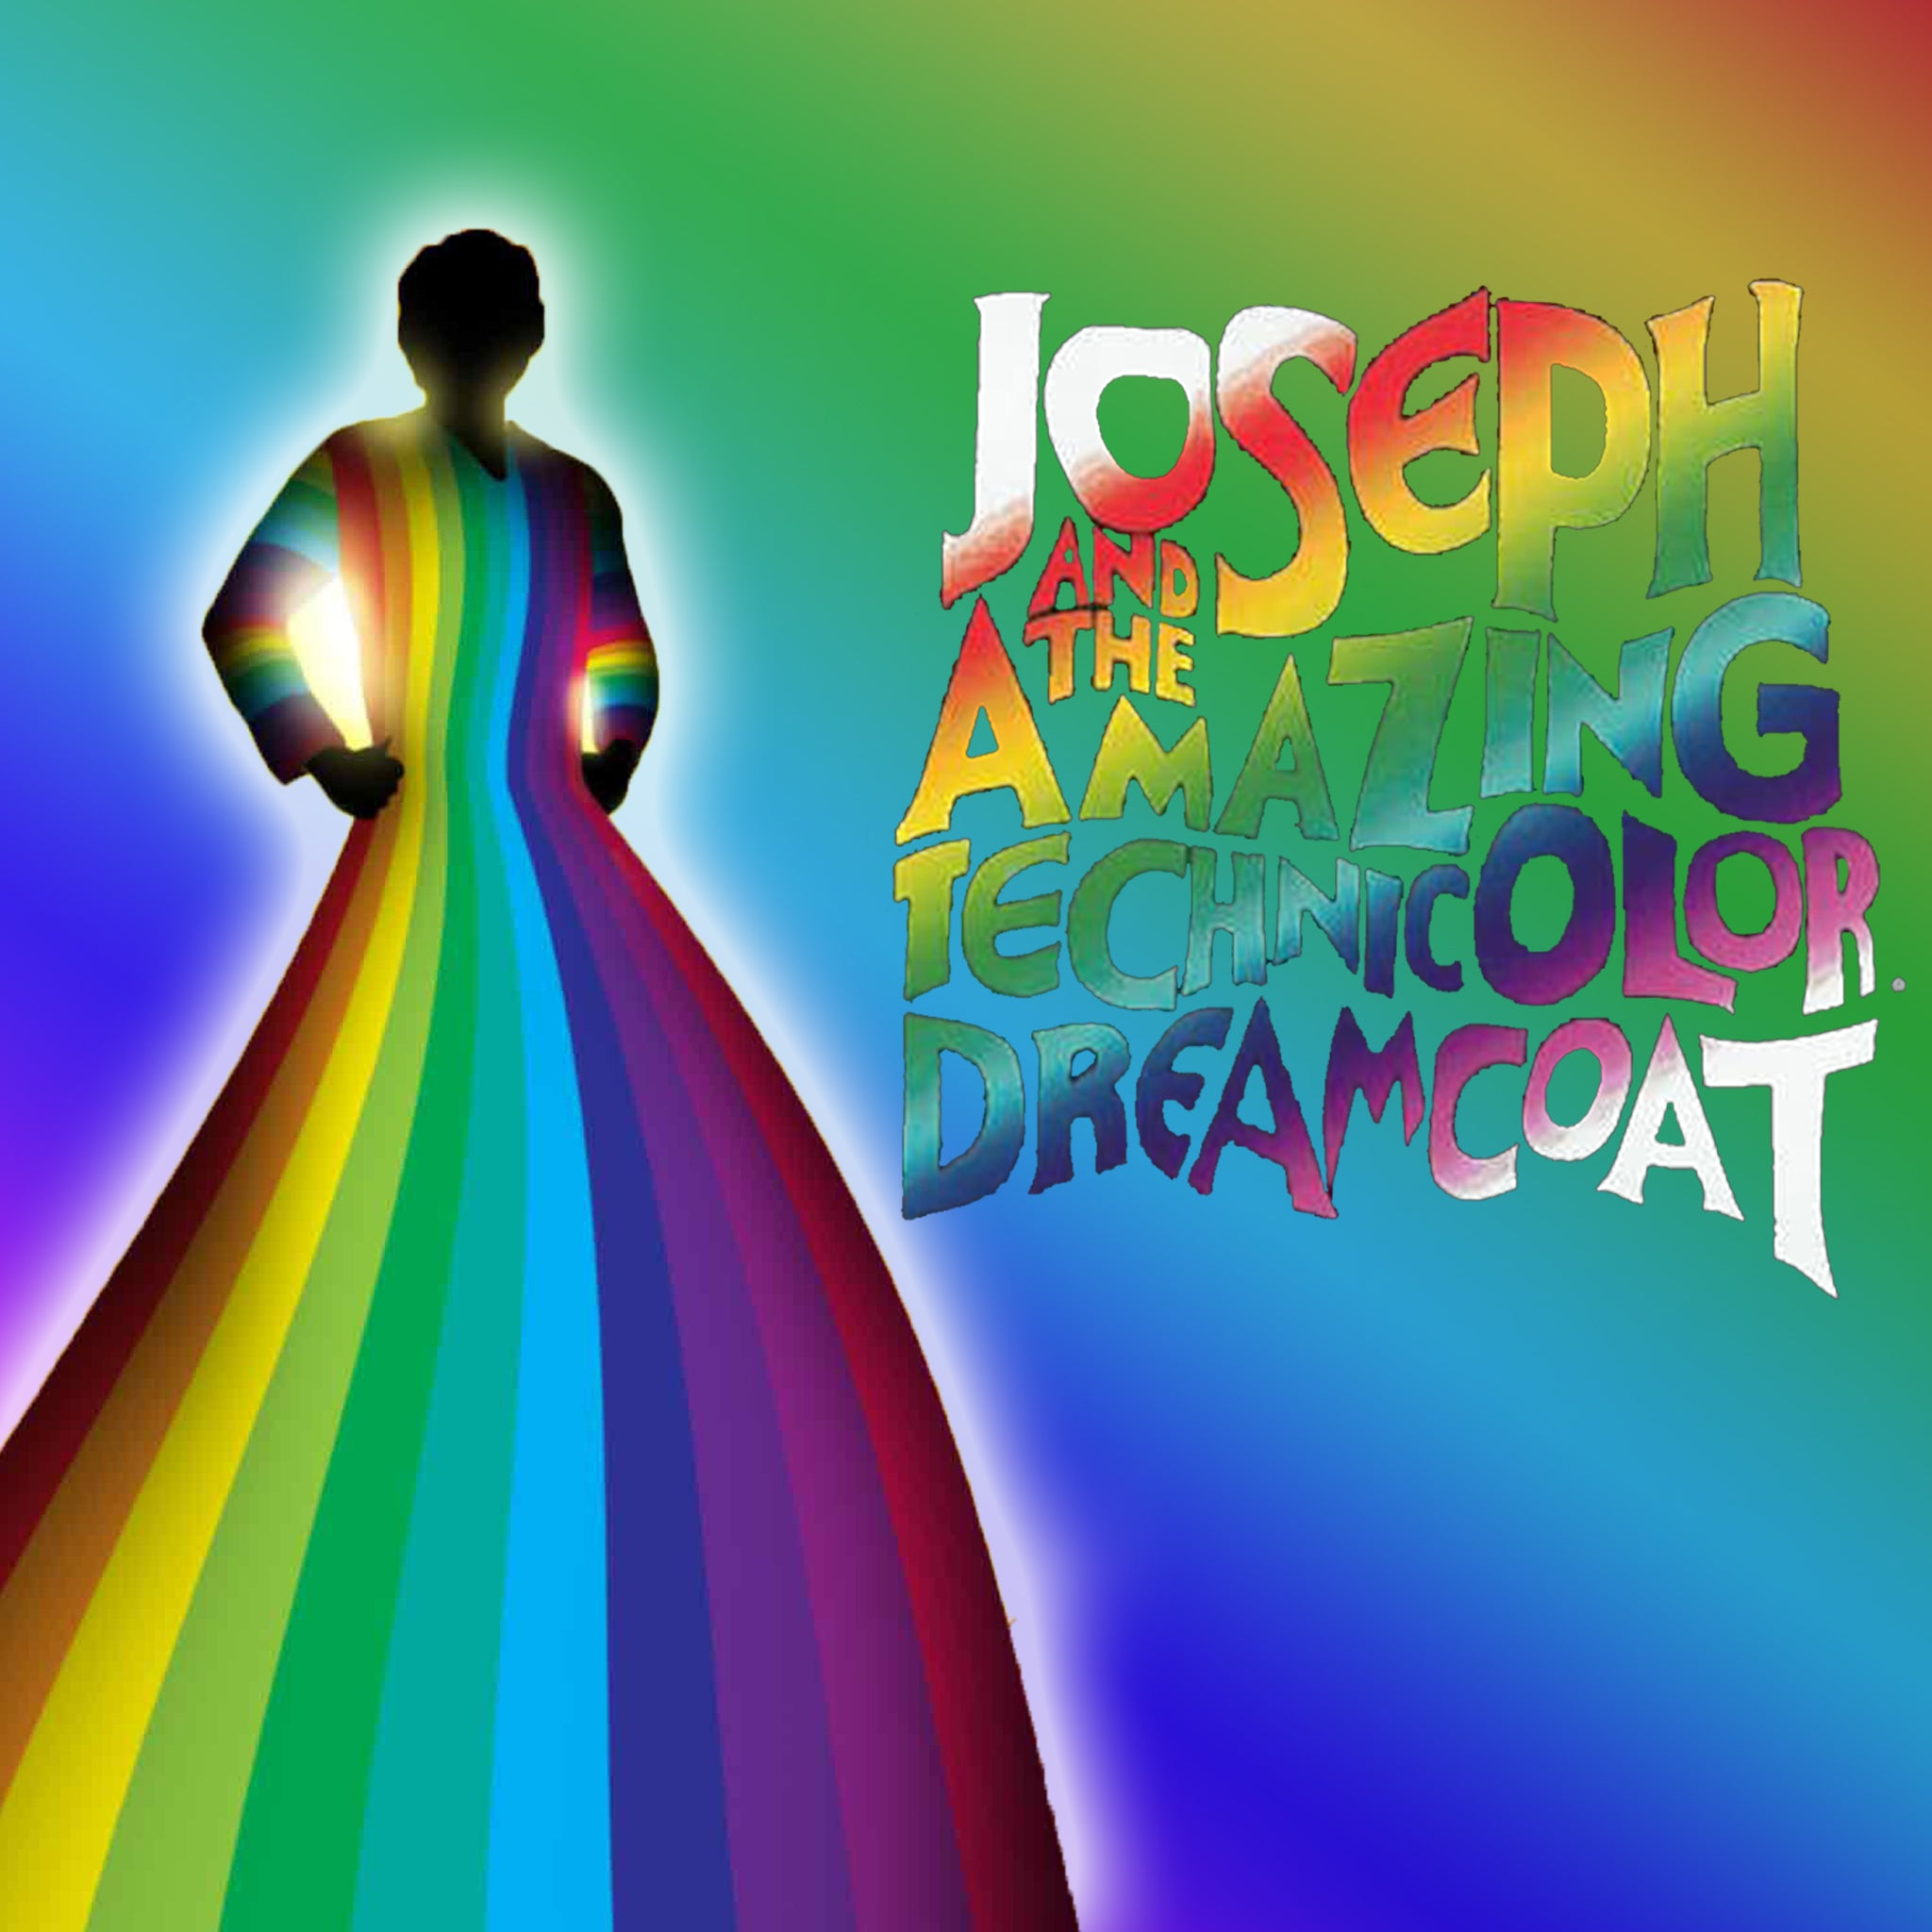 Joseph and the Amazing Technicolor Dreamcoat performed by Cardinal O'Hara Theater - Active Image Media